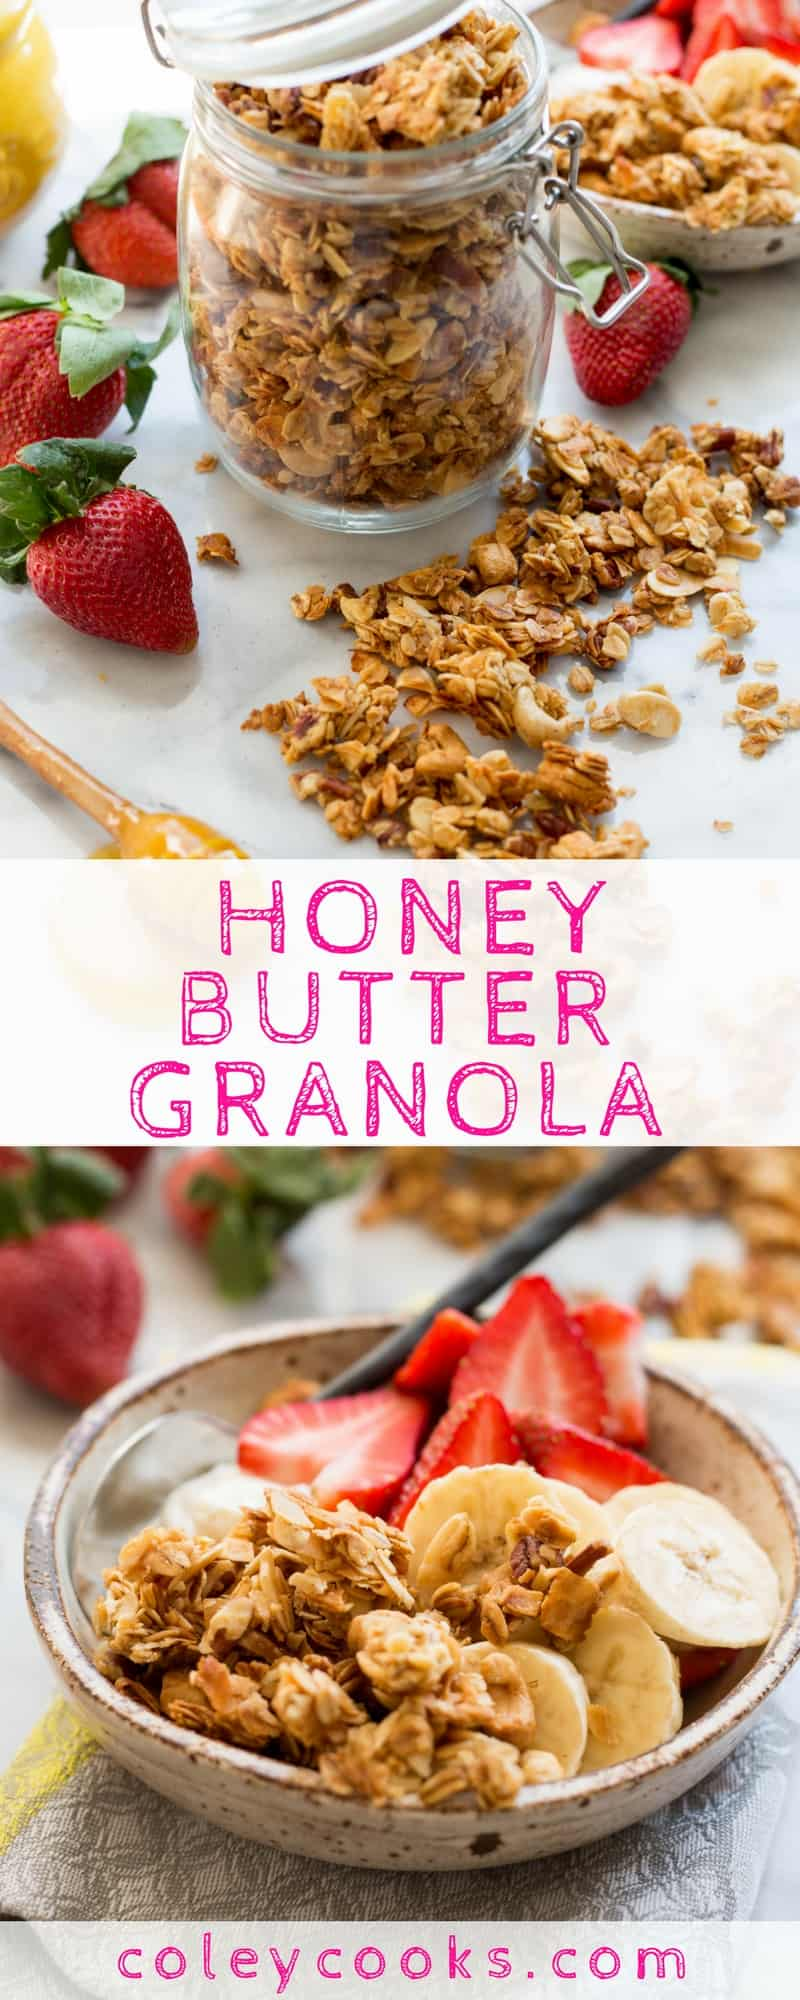 HONEY BUTTER GRANOLA | EASY gluten free granola recipe made with grass fed butter, sunflower seeds, and honey! Great for smoothie bowls, yogurt, or with milk! #glutenfree #breakfast | ColeyCooks.com